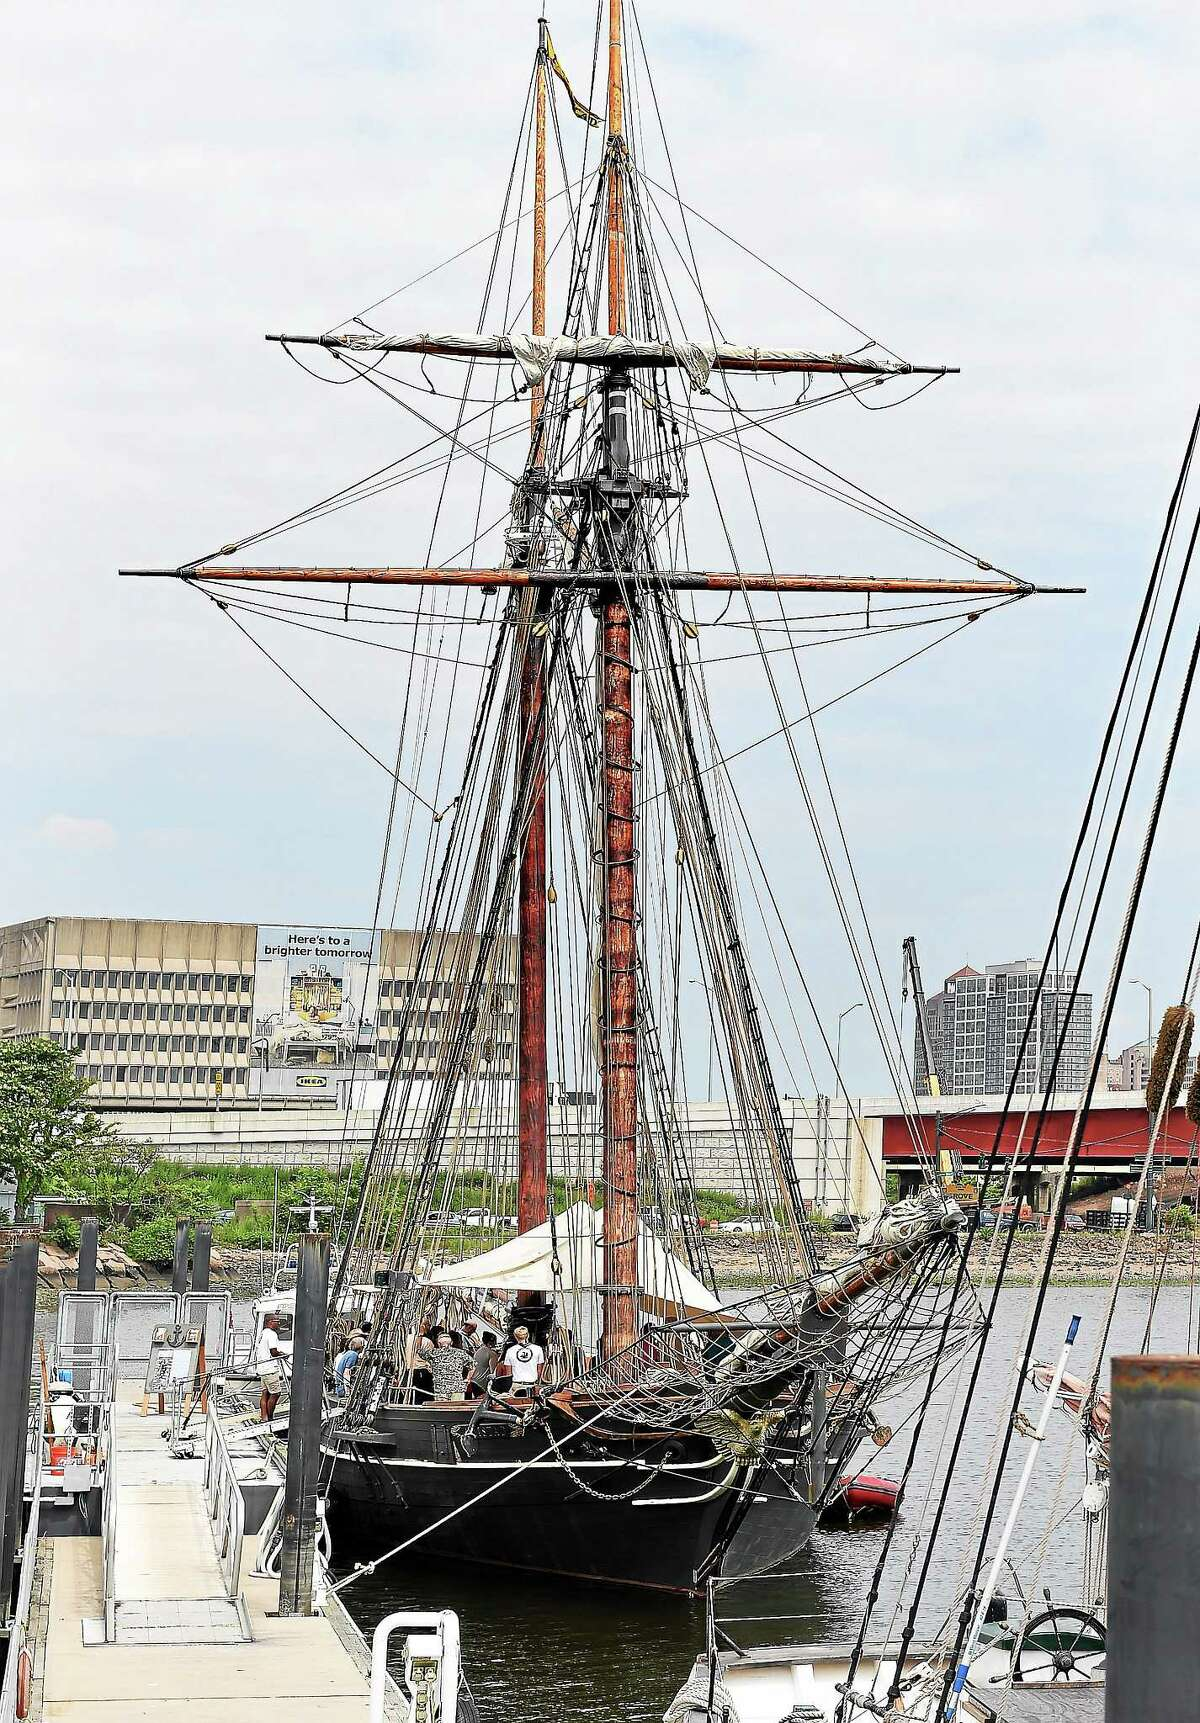 The Amistad is docked in New Haven Harbor during the July 2 homecoming ceremony. The boat will be in Long Island Sound for most of the summer, with many events and public trips planned.